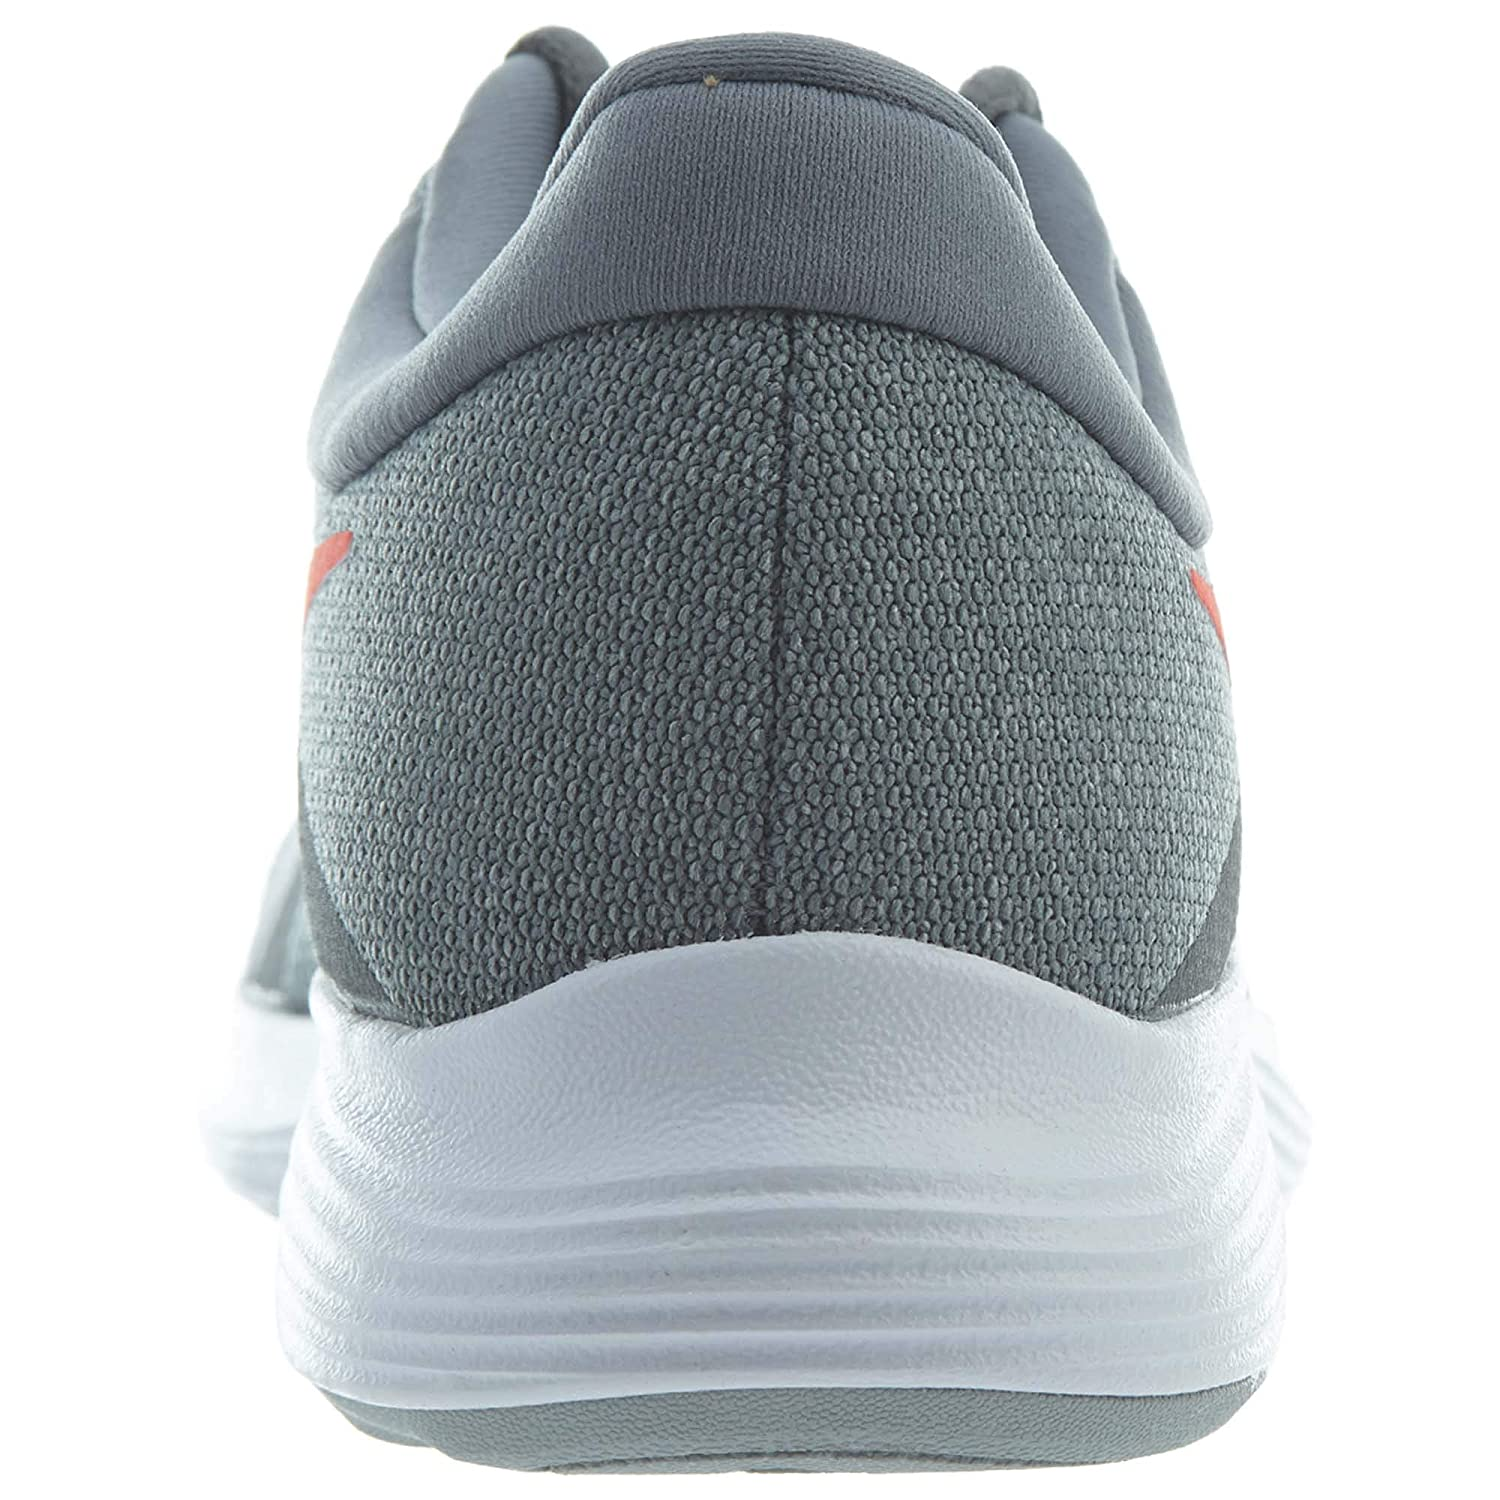 390b3a3f91d3b NIKE Men s Revolution 4 Cool Grey Habanero Red - Wolf Grey - White Running  Shoes 908988-013  Buy Online at Low Prices in India - Amazon.in